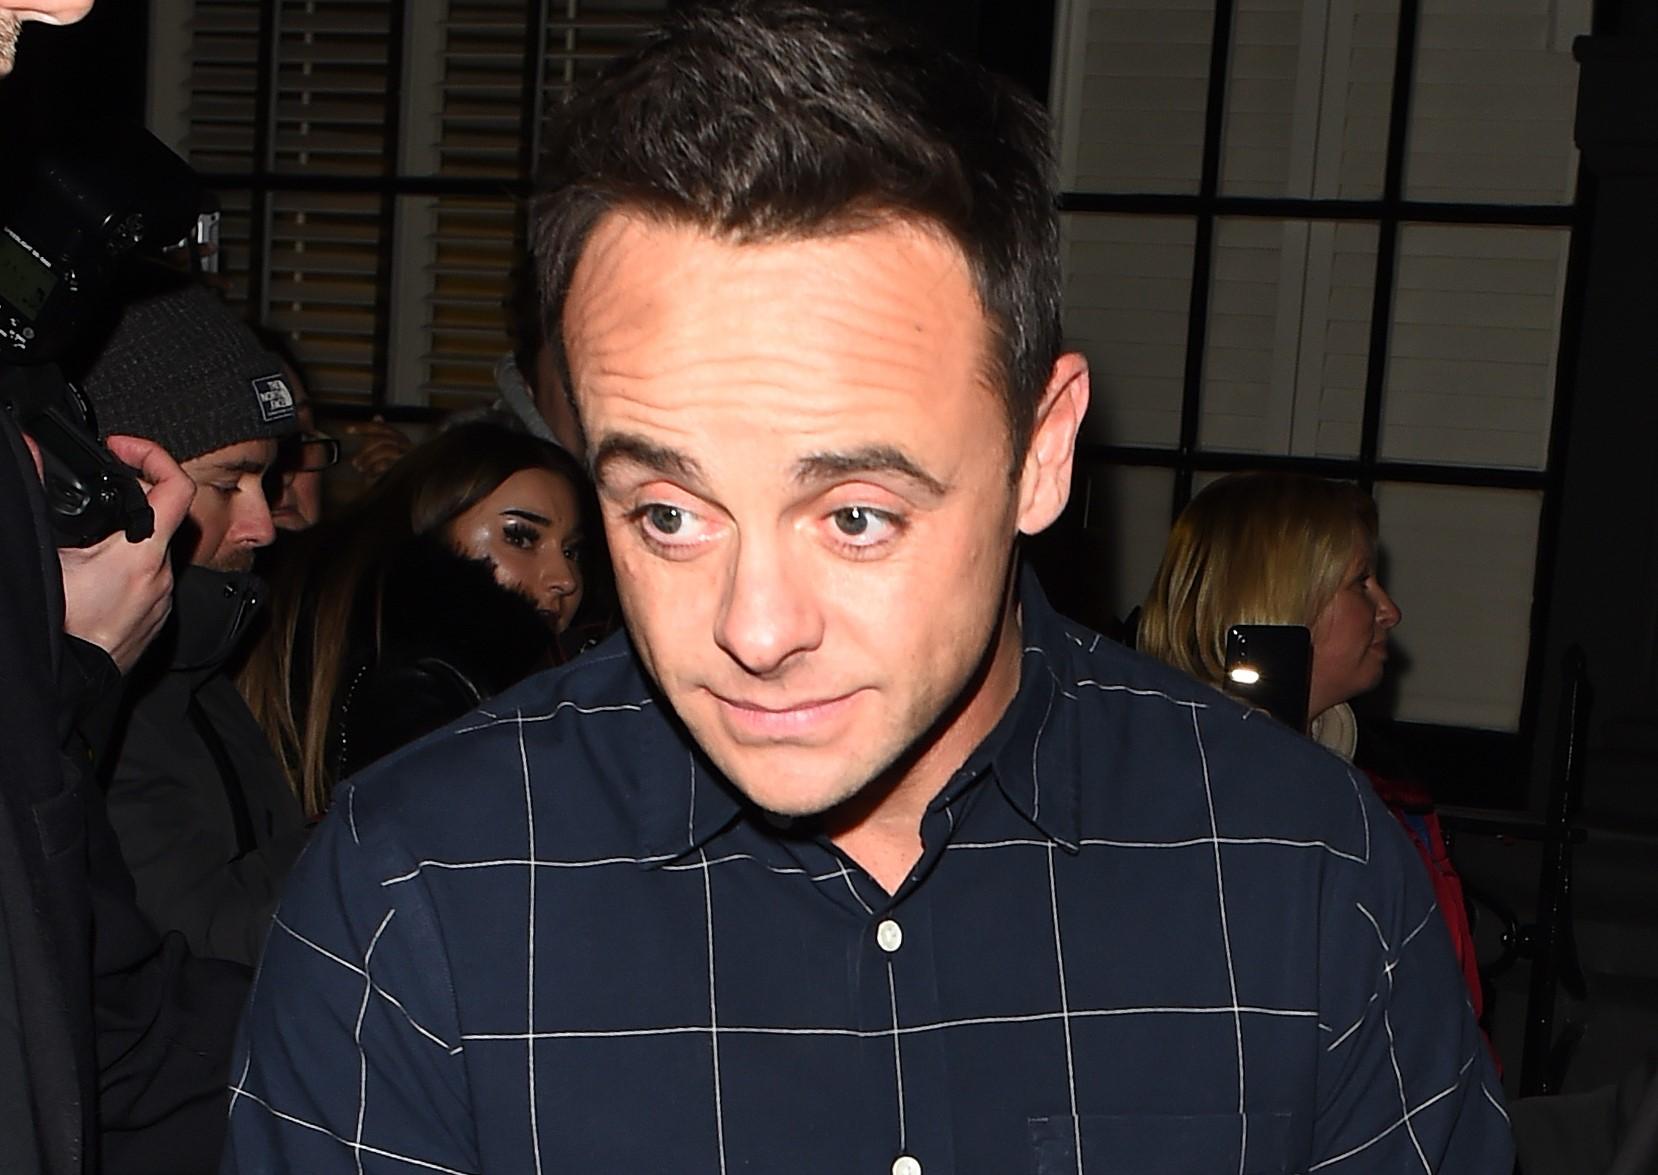 Ant McPartlin and girlfriend Anne-Marie Corbett show off adorable new puppies